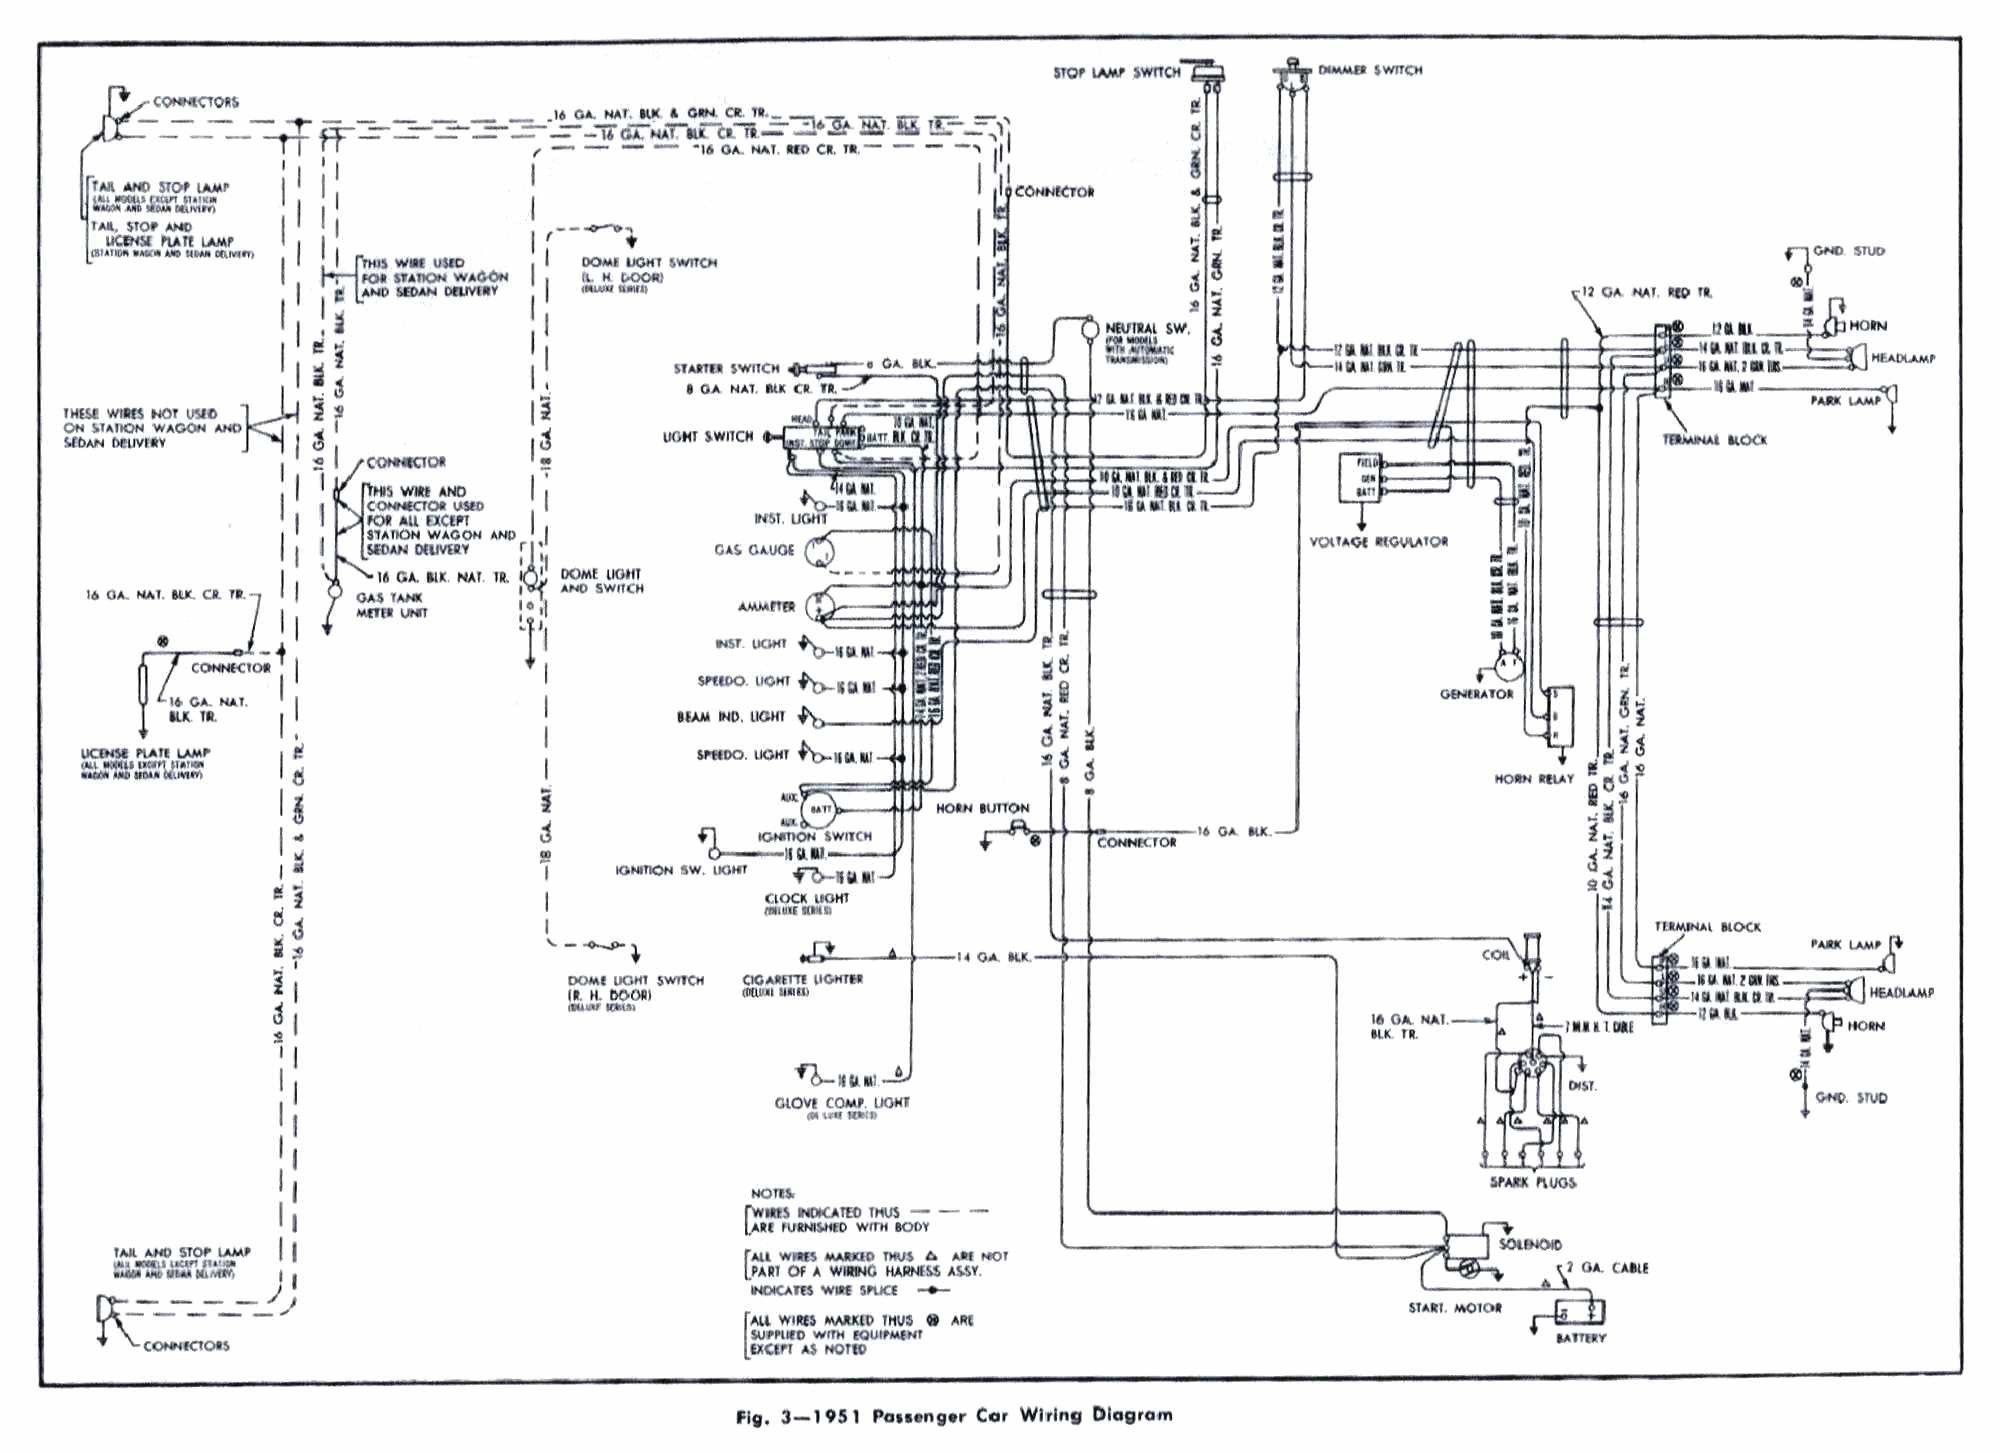 1981 Chevy Truck Wiring Diagram Unique 1977 Chevrolet Gift Electrical